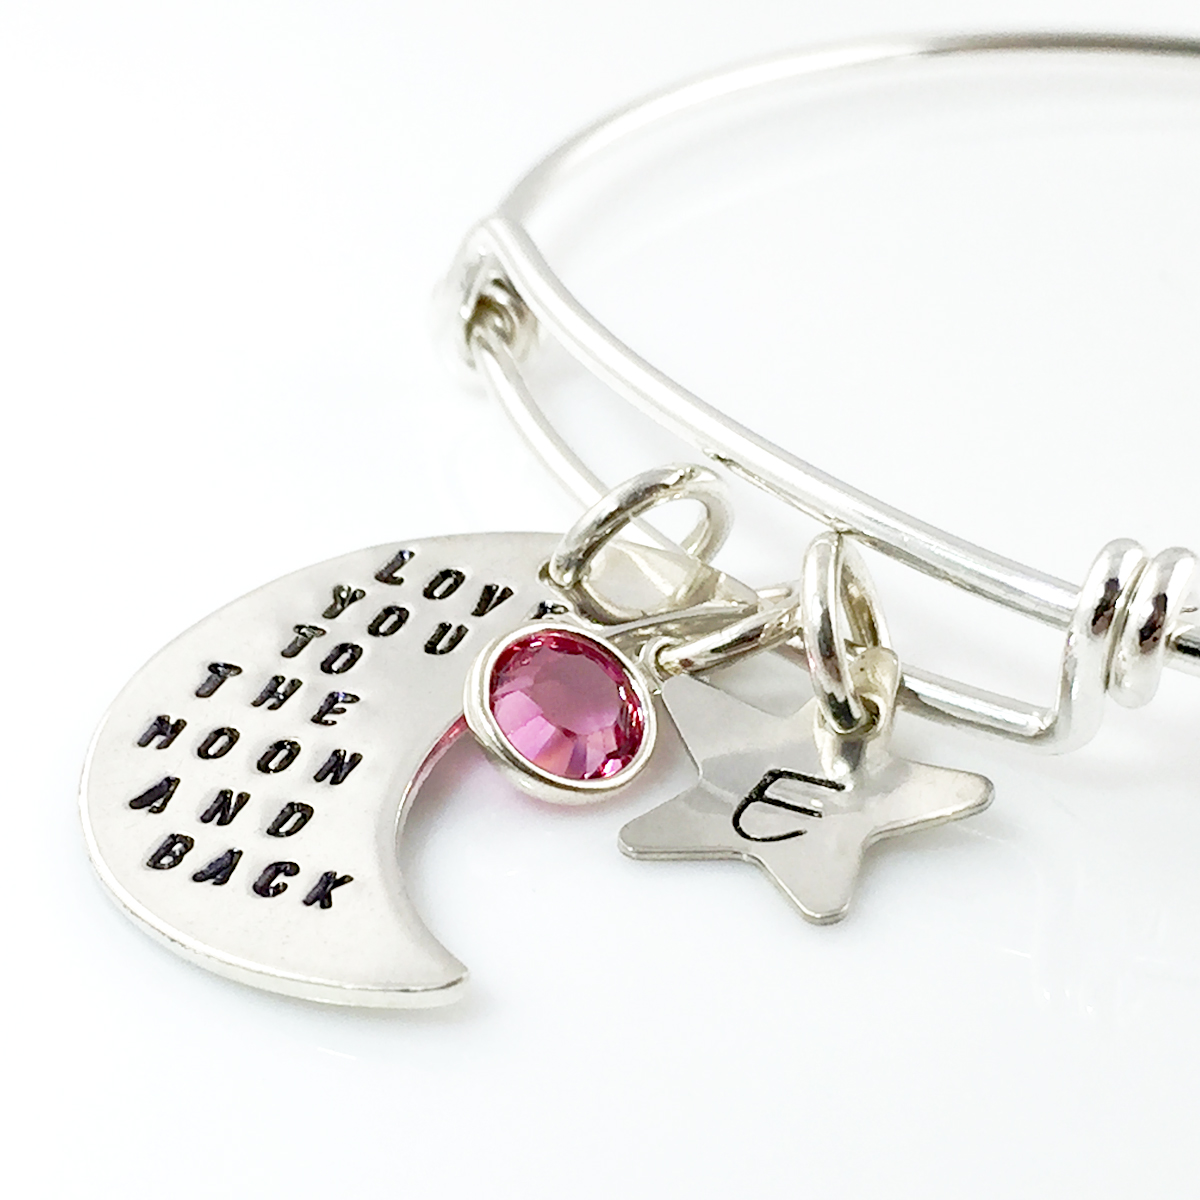 Love You to the Moon and Back Simply Charming Bangle Bracelet